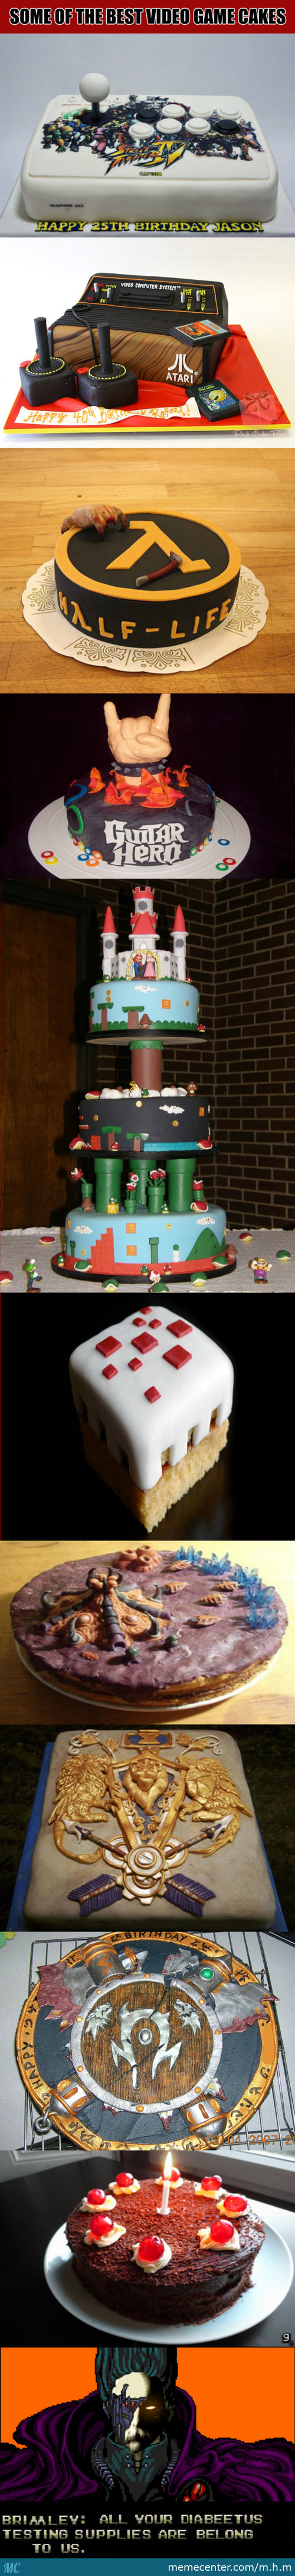 Some Of The Best Video Game Cakes